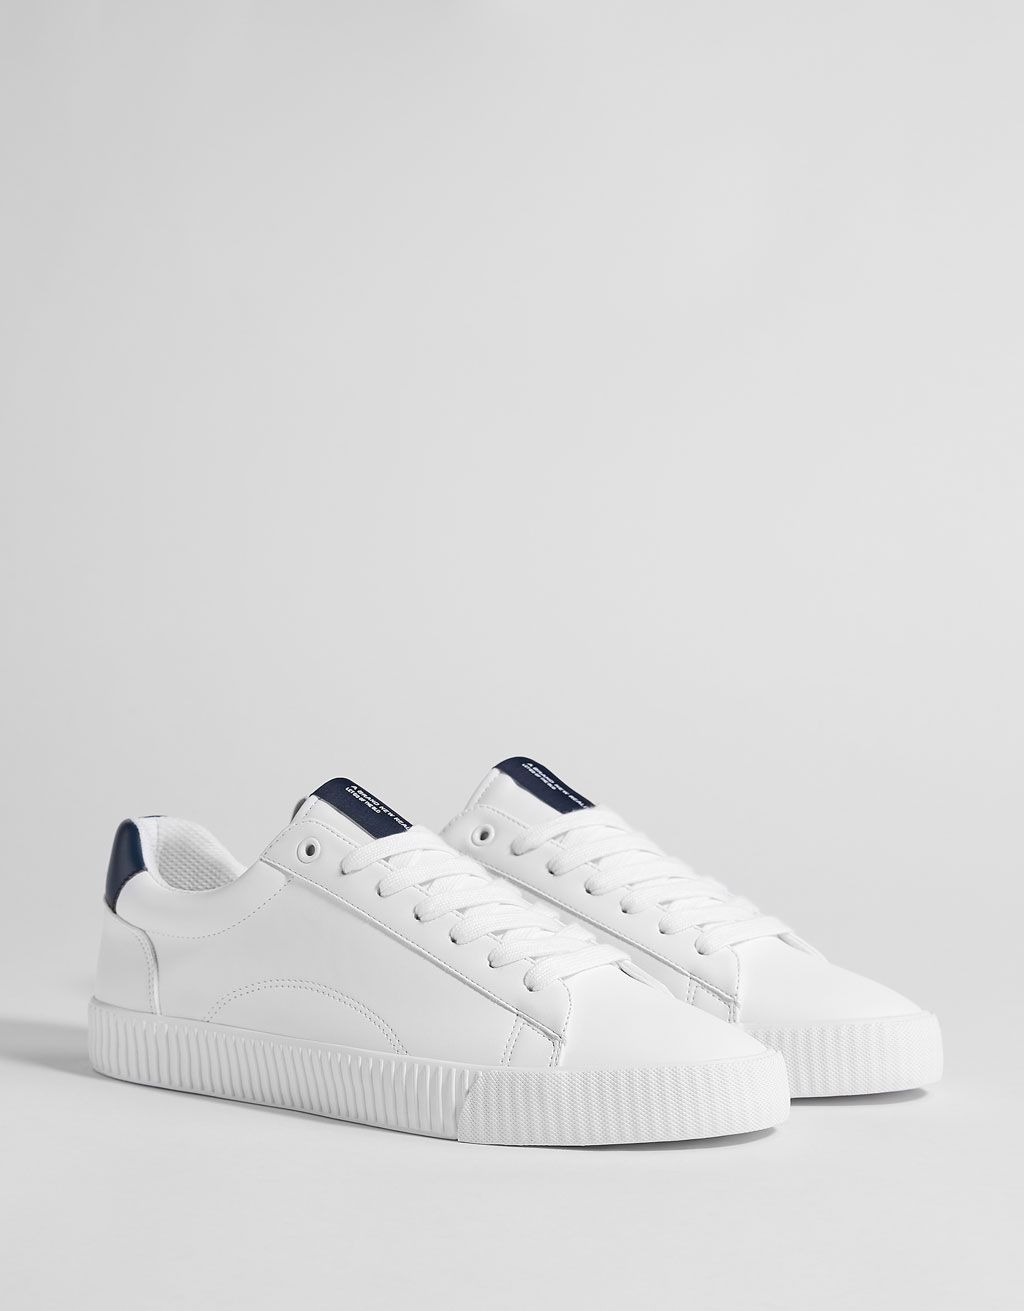 Men's contrasting trainers is part of Shoes - White laceup trainers featuring a sloganprinted blue piece on the tongue and heel, striped white soles and multicoloured slogan detailing on the insoles